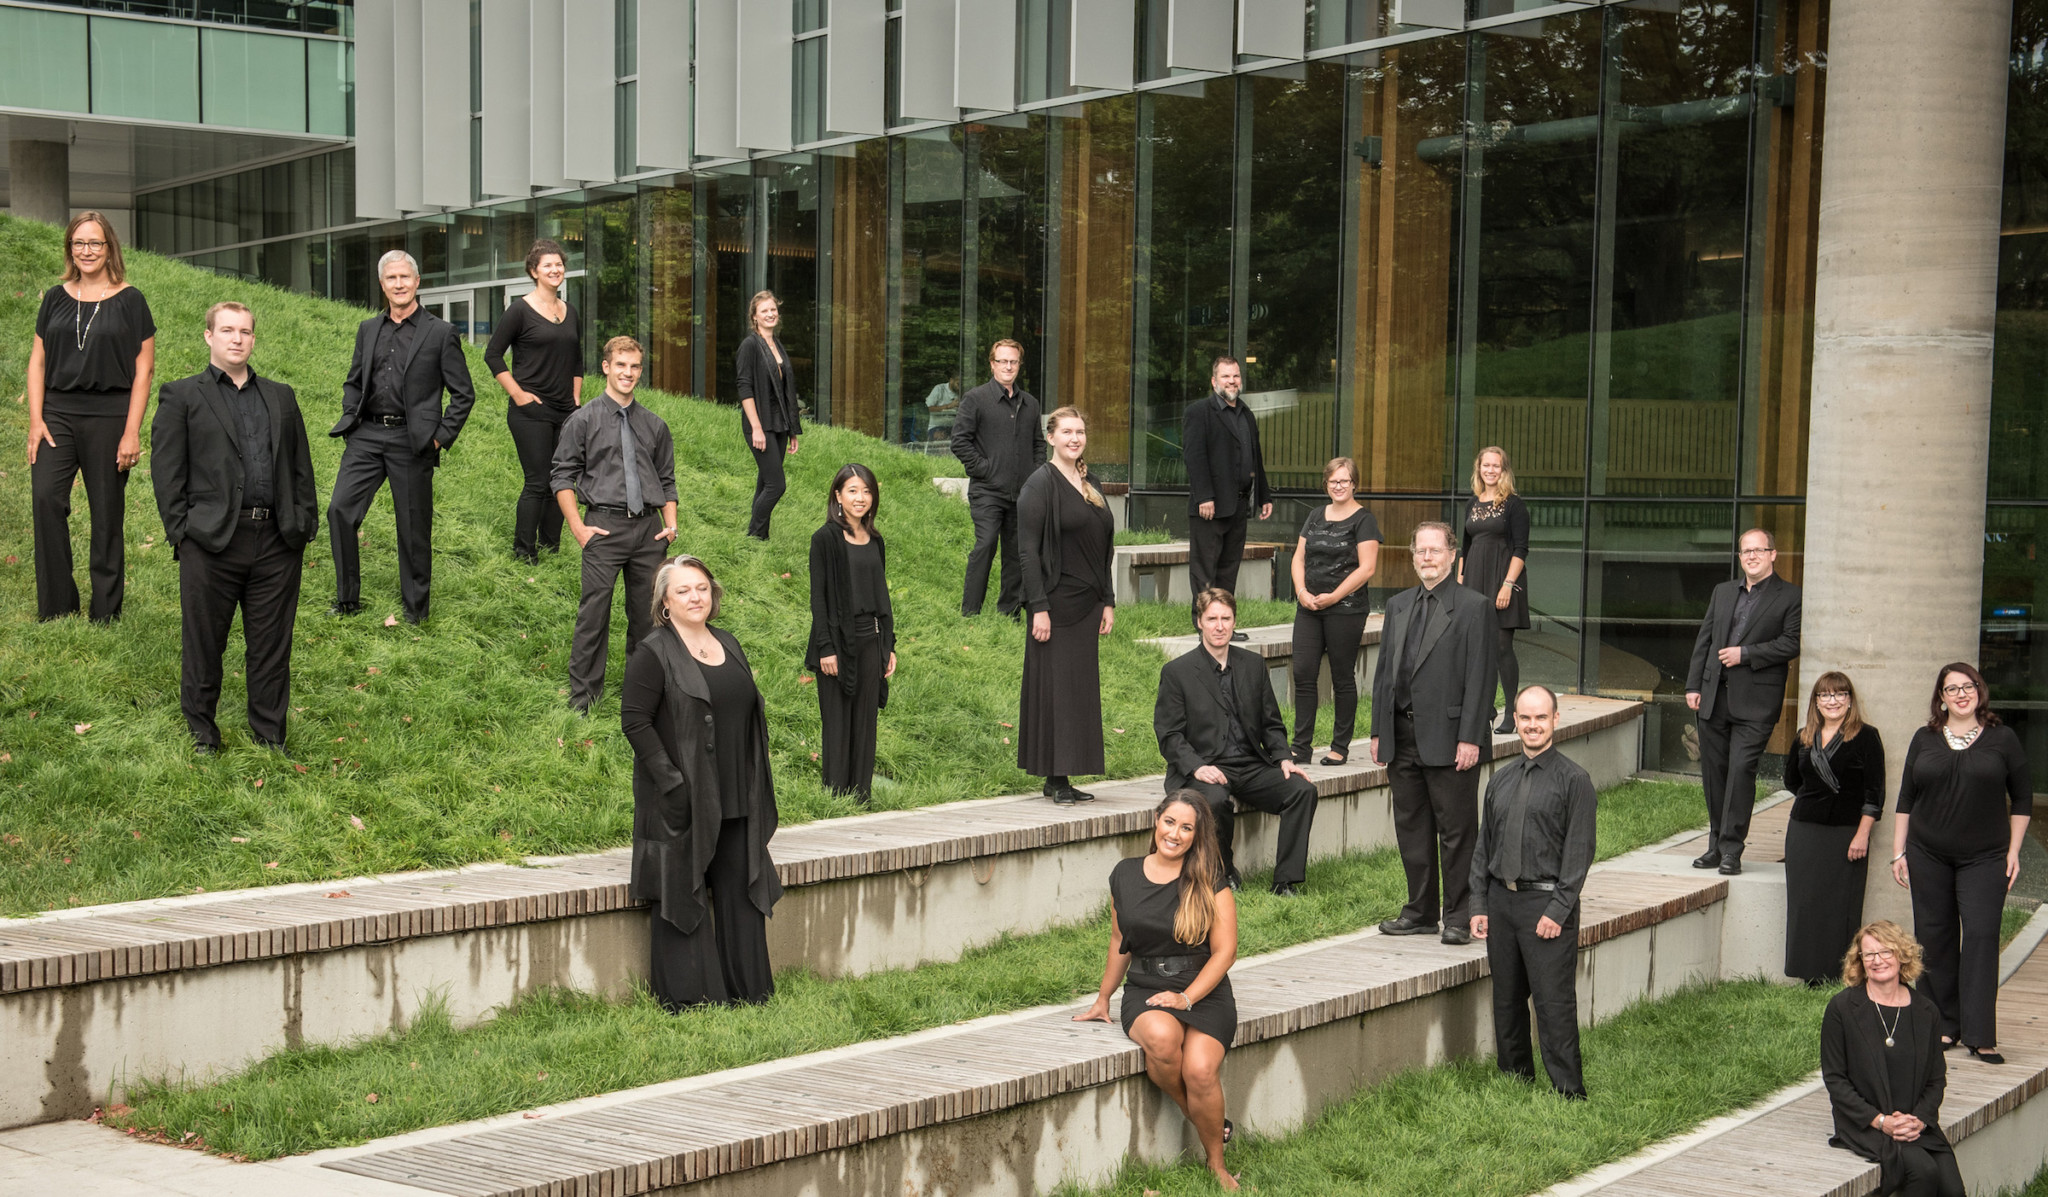 VANCOUVER CANTATA SINGERS CELEBRATES 60 YEARS WITH KANTATEFEIER! A CANTATA CELEBRATION